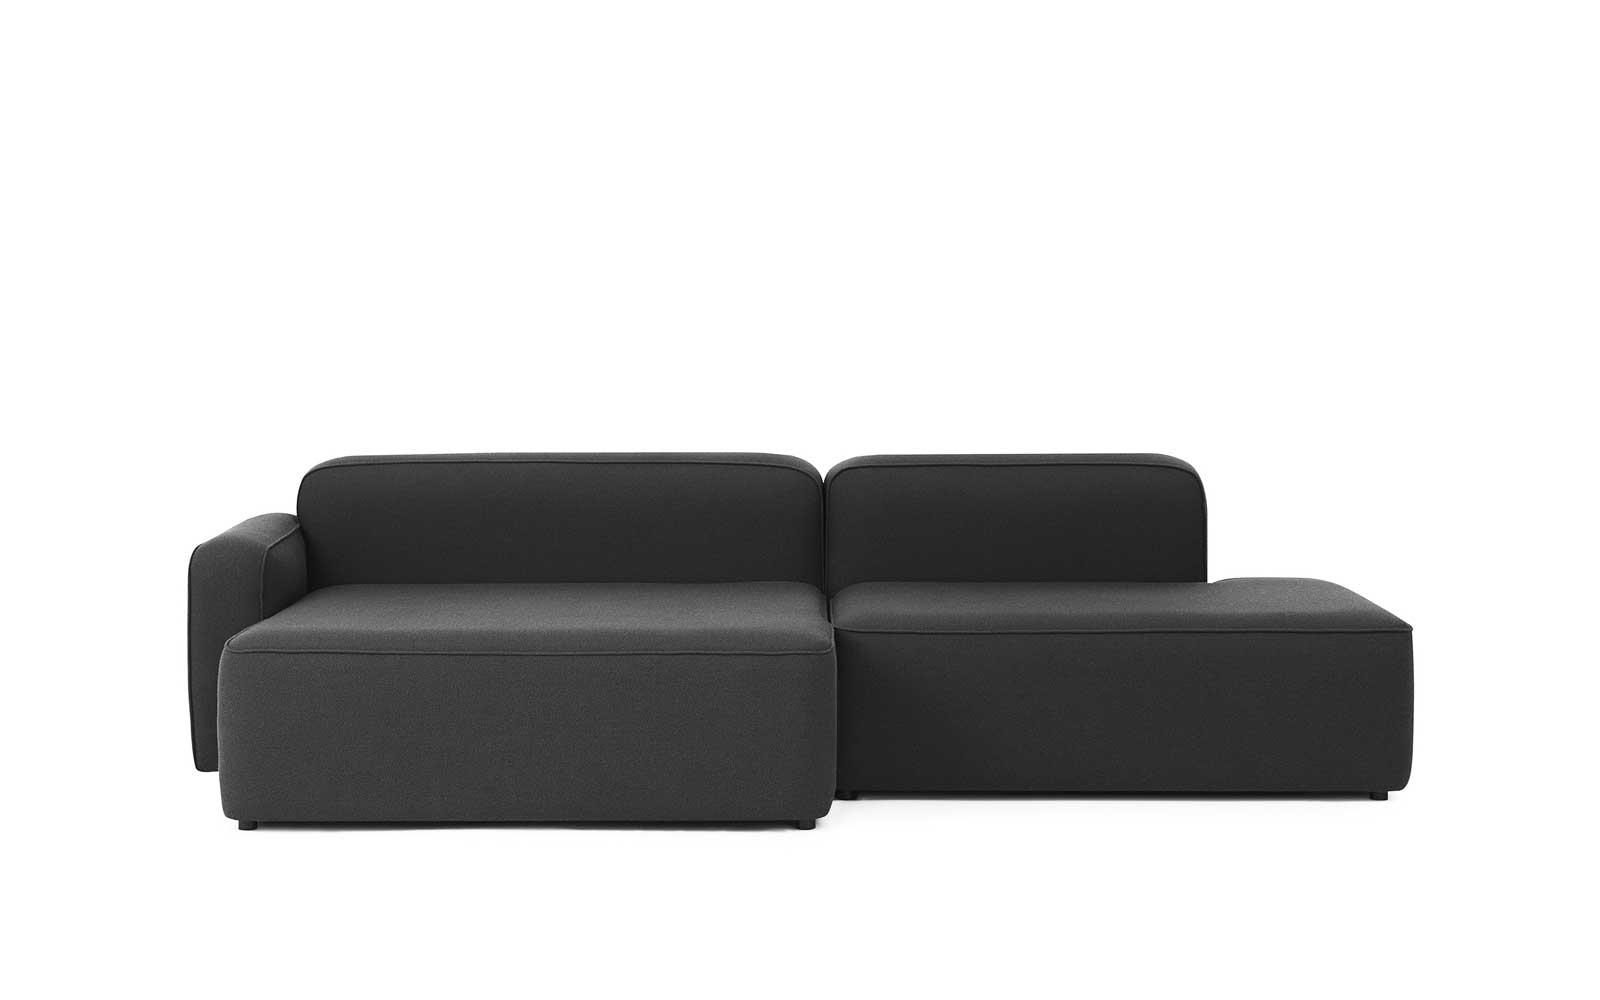 double lounge sofa size sectional wide chaise couch of on design ideas good with medium